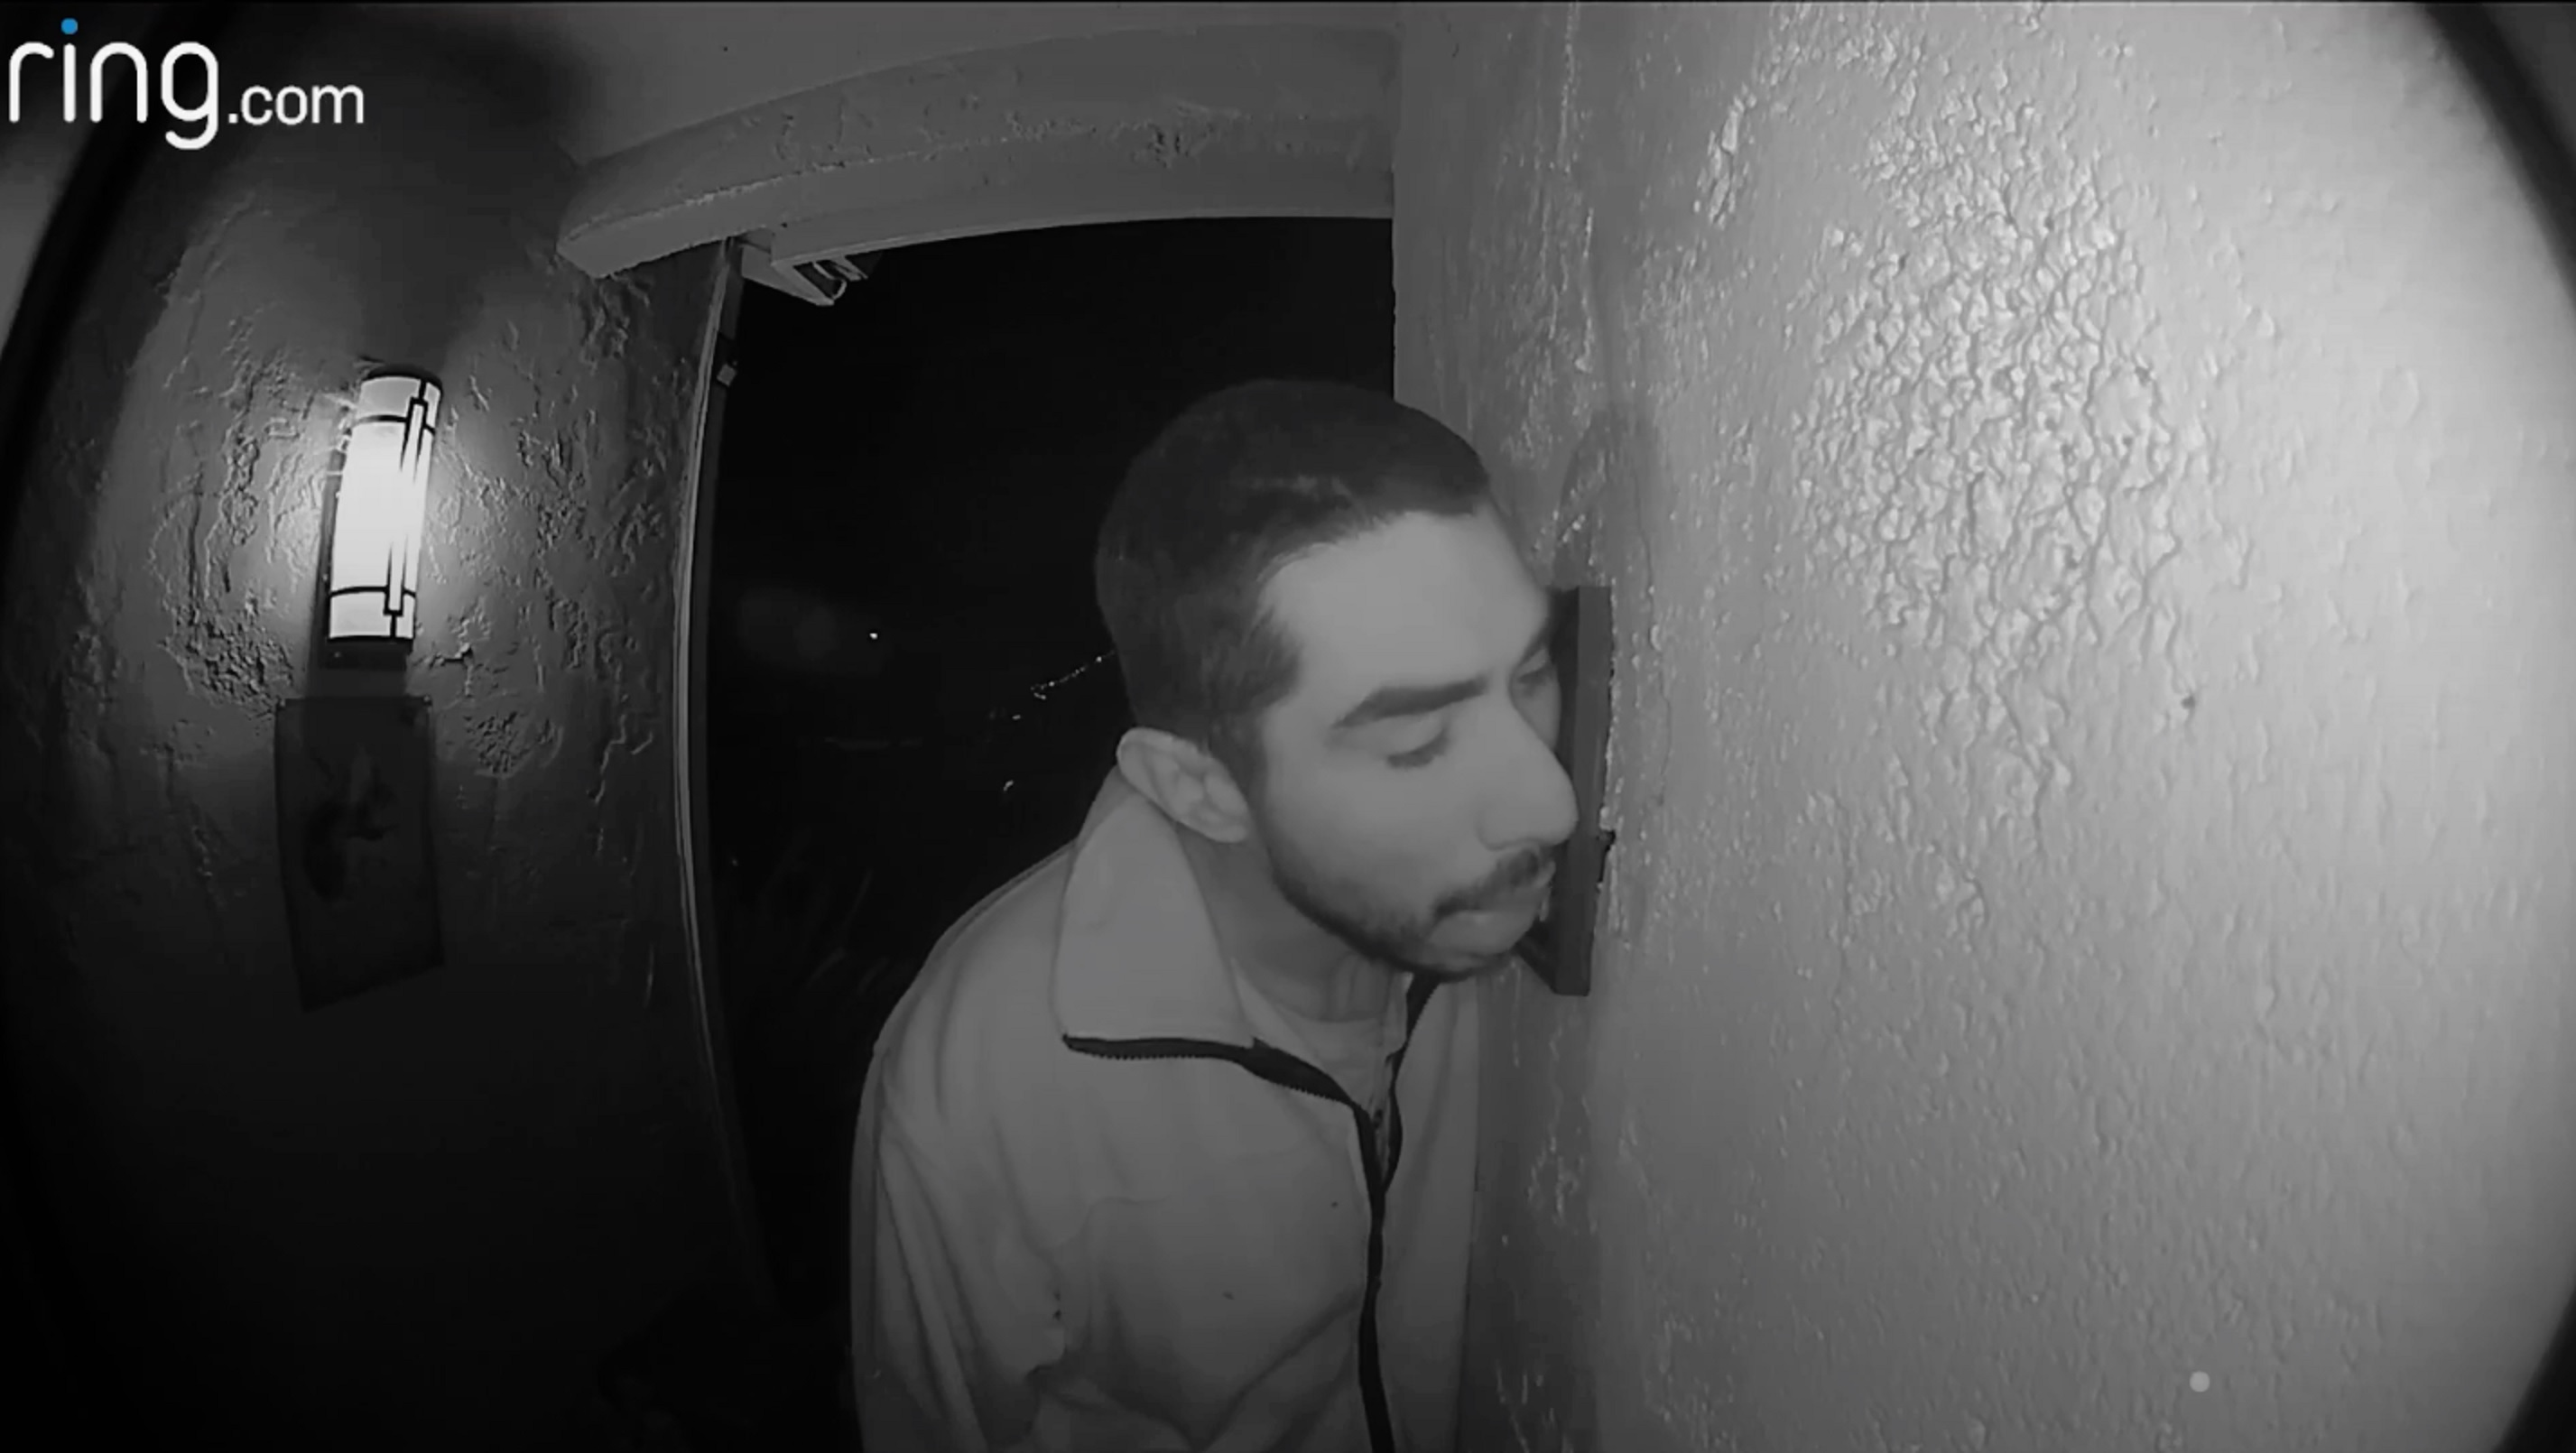 A man is caught on camera licking a home security system in Salinas, south of San Francisco